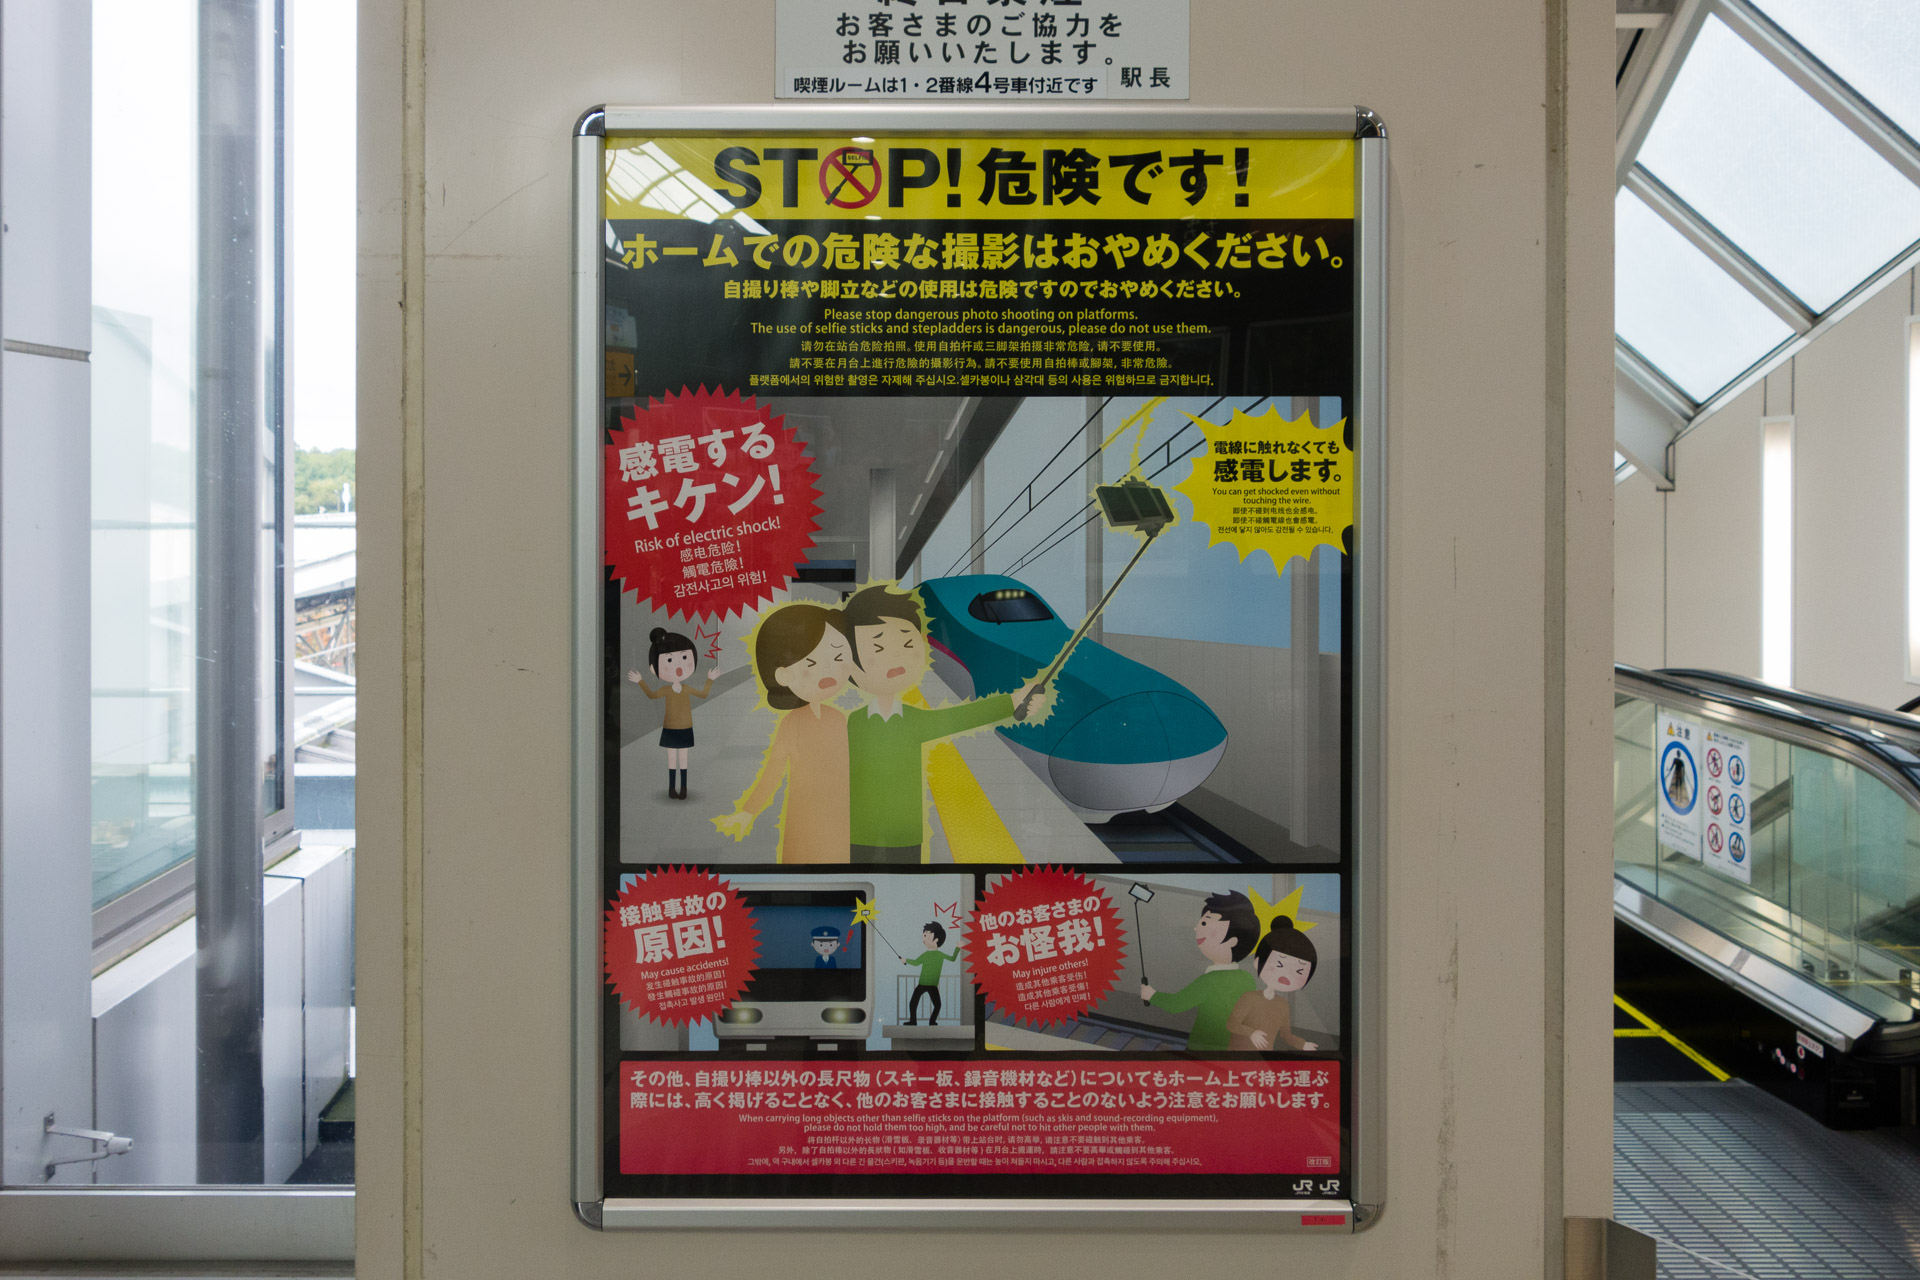 Plakat: Risk of electric shock